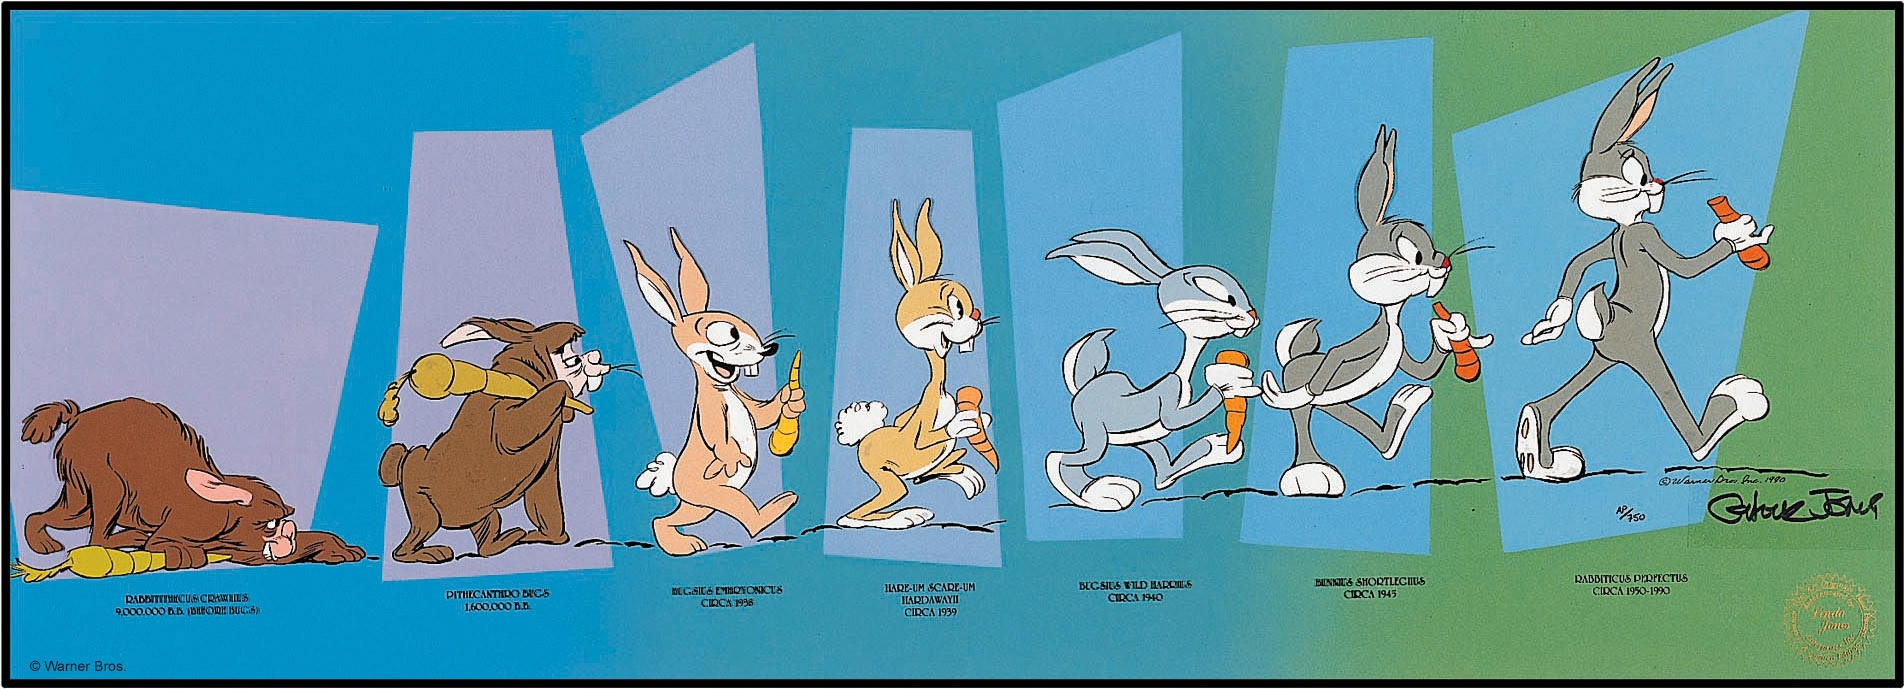 The Evolution of Bugs Bunny  a hand-painted cel art edition by Chuck Jones